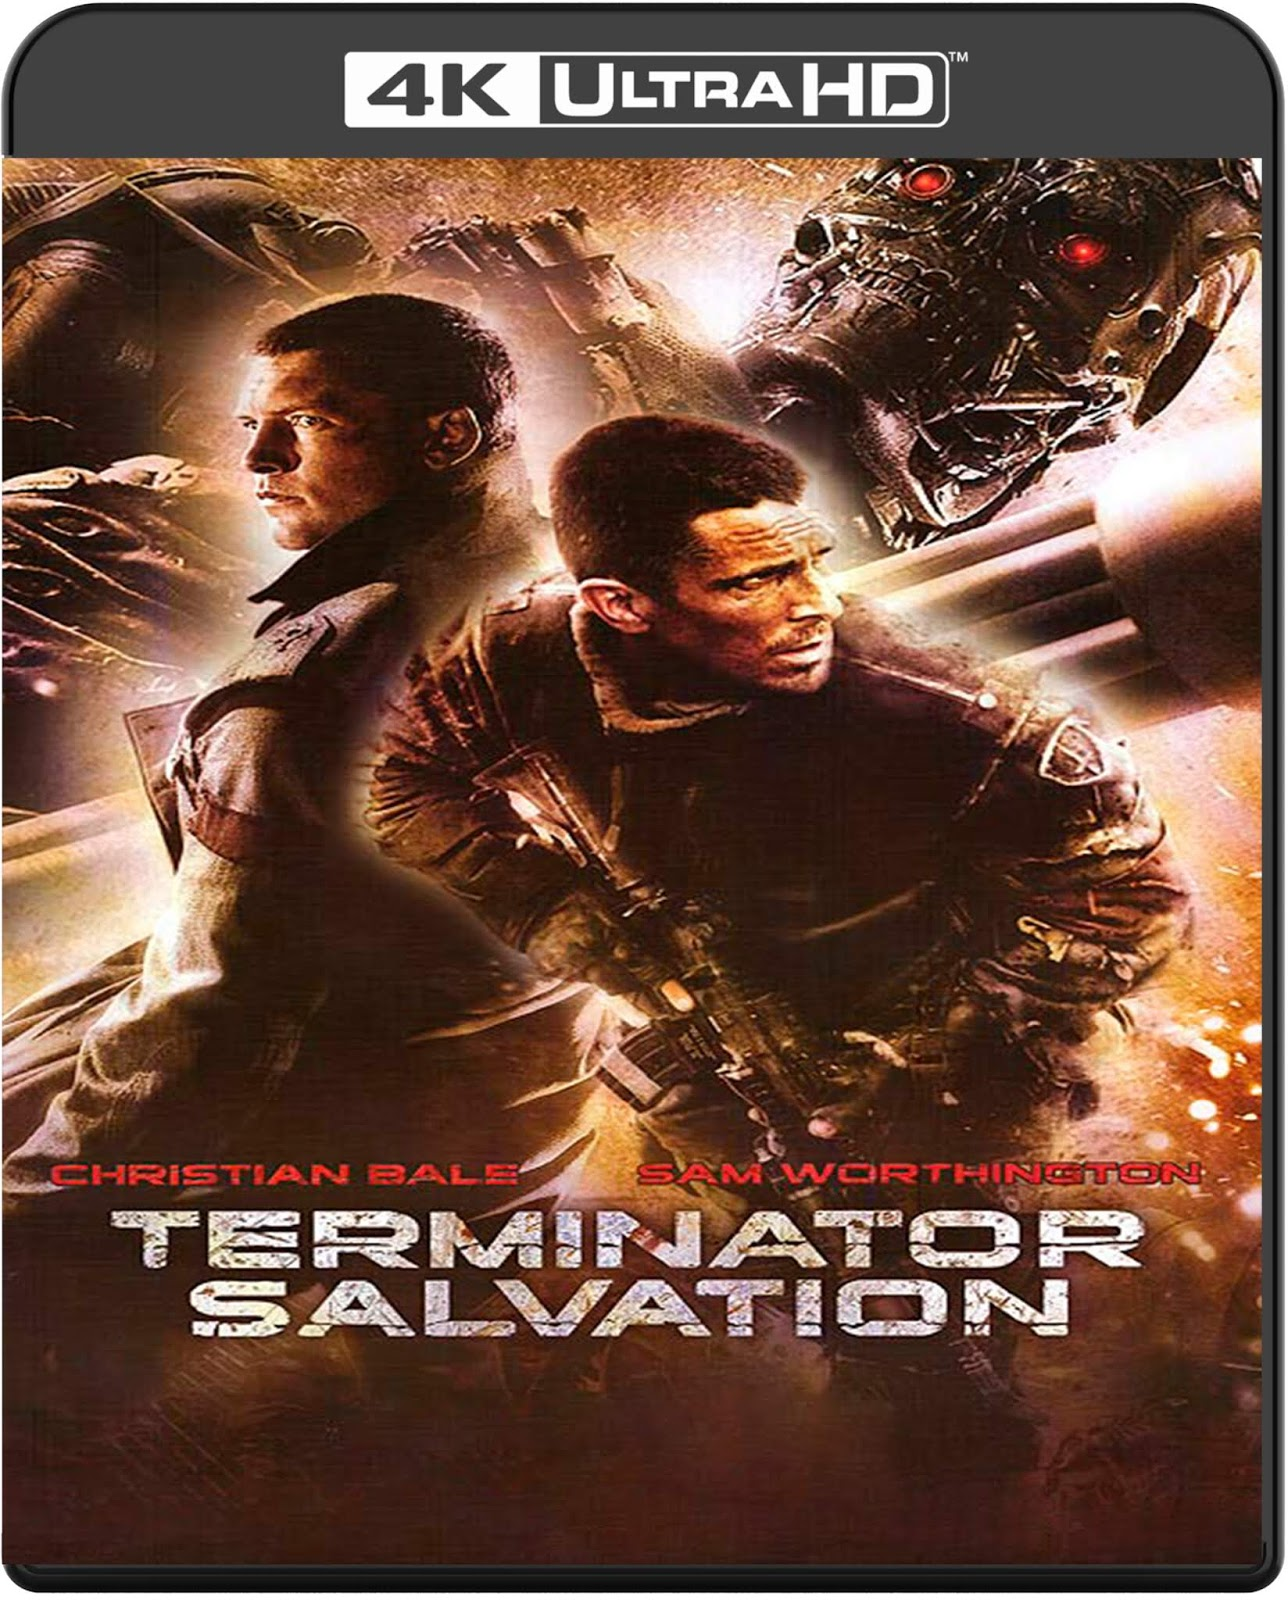 Terminator Salvation: The Future Begins [2009] [UHD] [2160p] [Español]